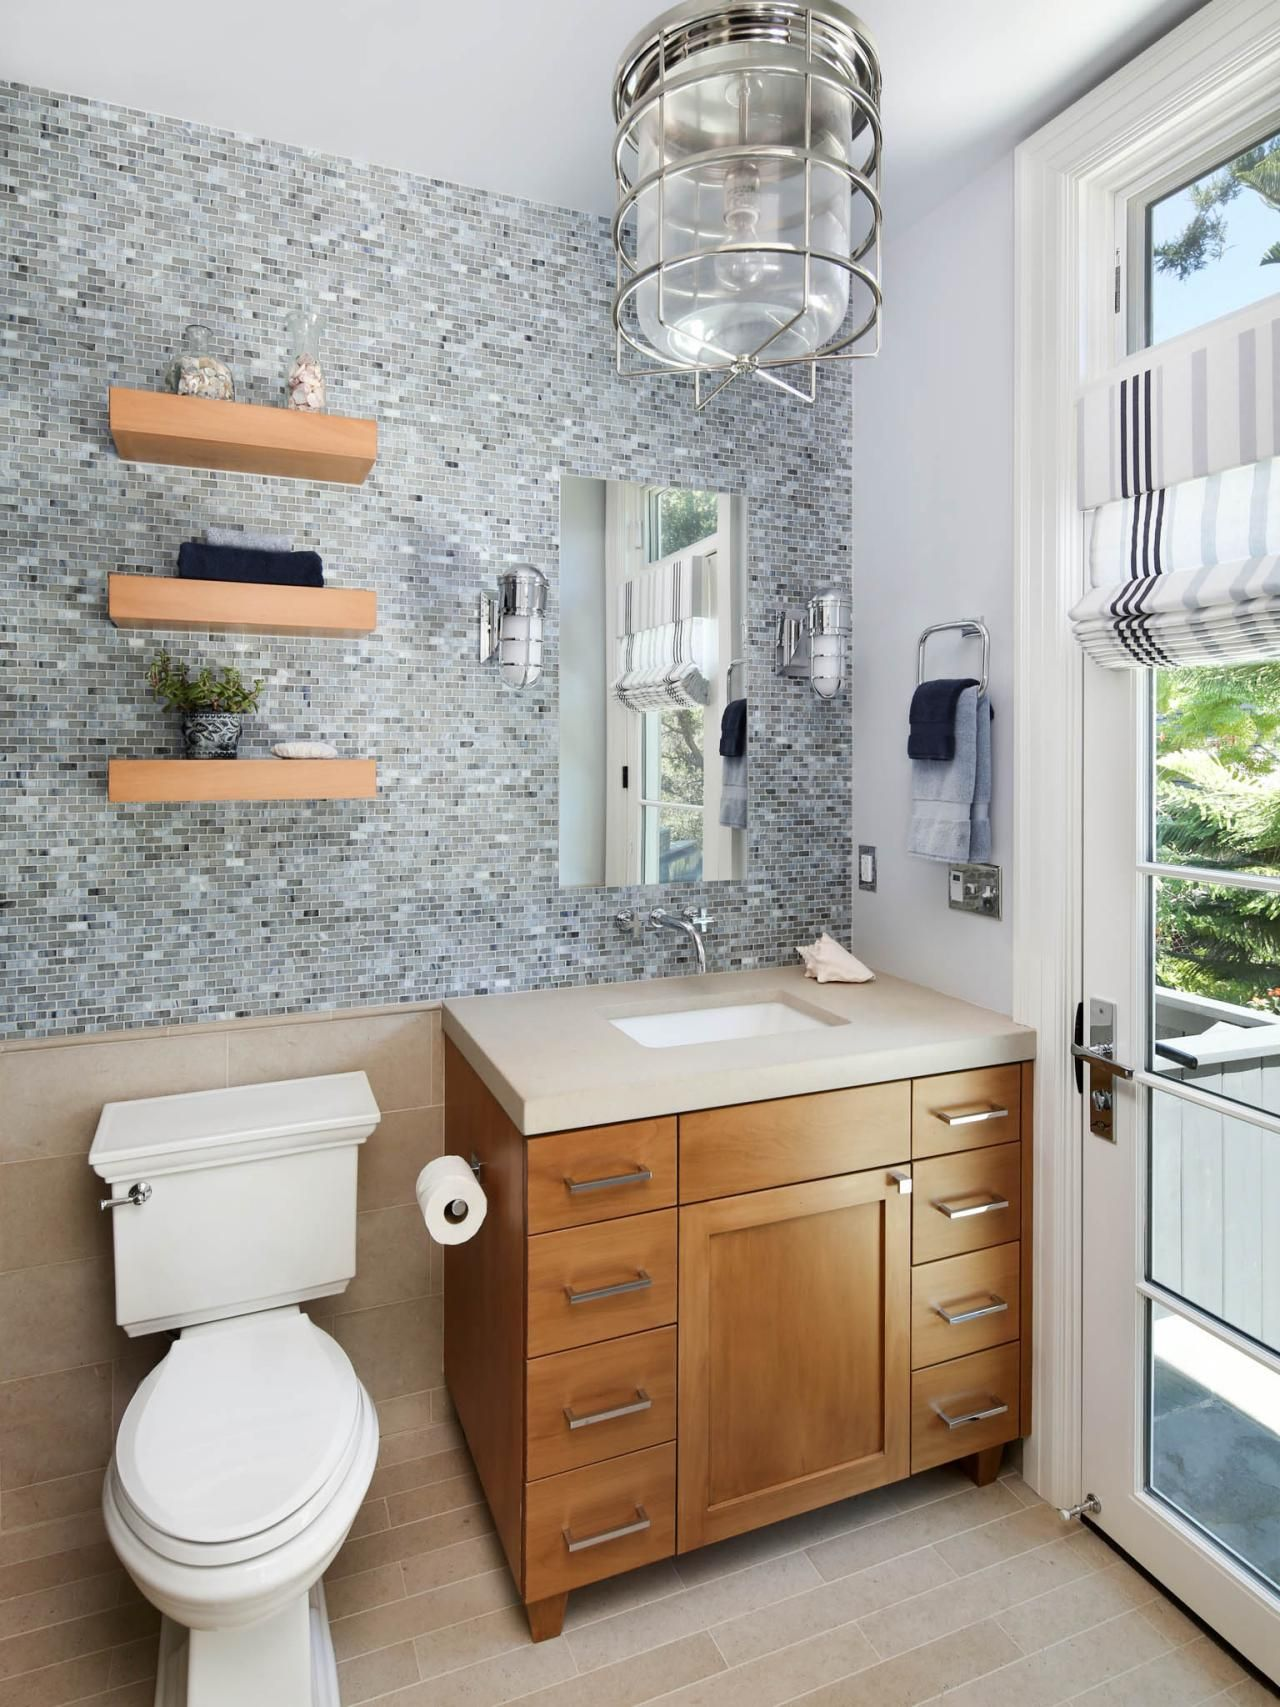 The Years Best Bathrooms NKBA Bath Design Finalists For - Bathroom hand towels for small bathroom ideas